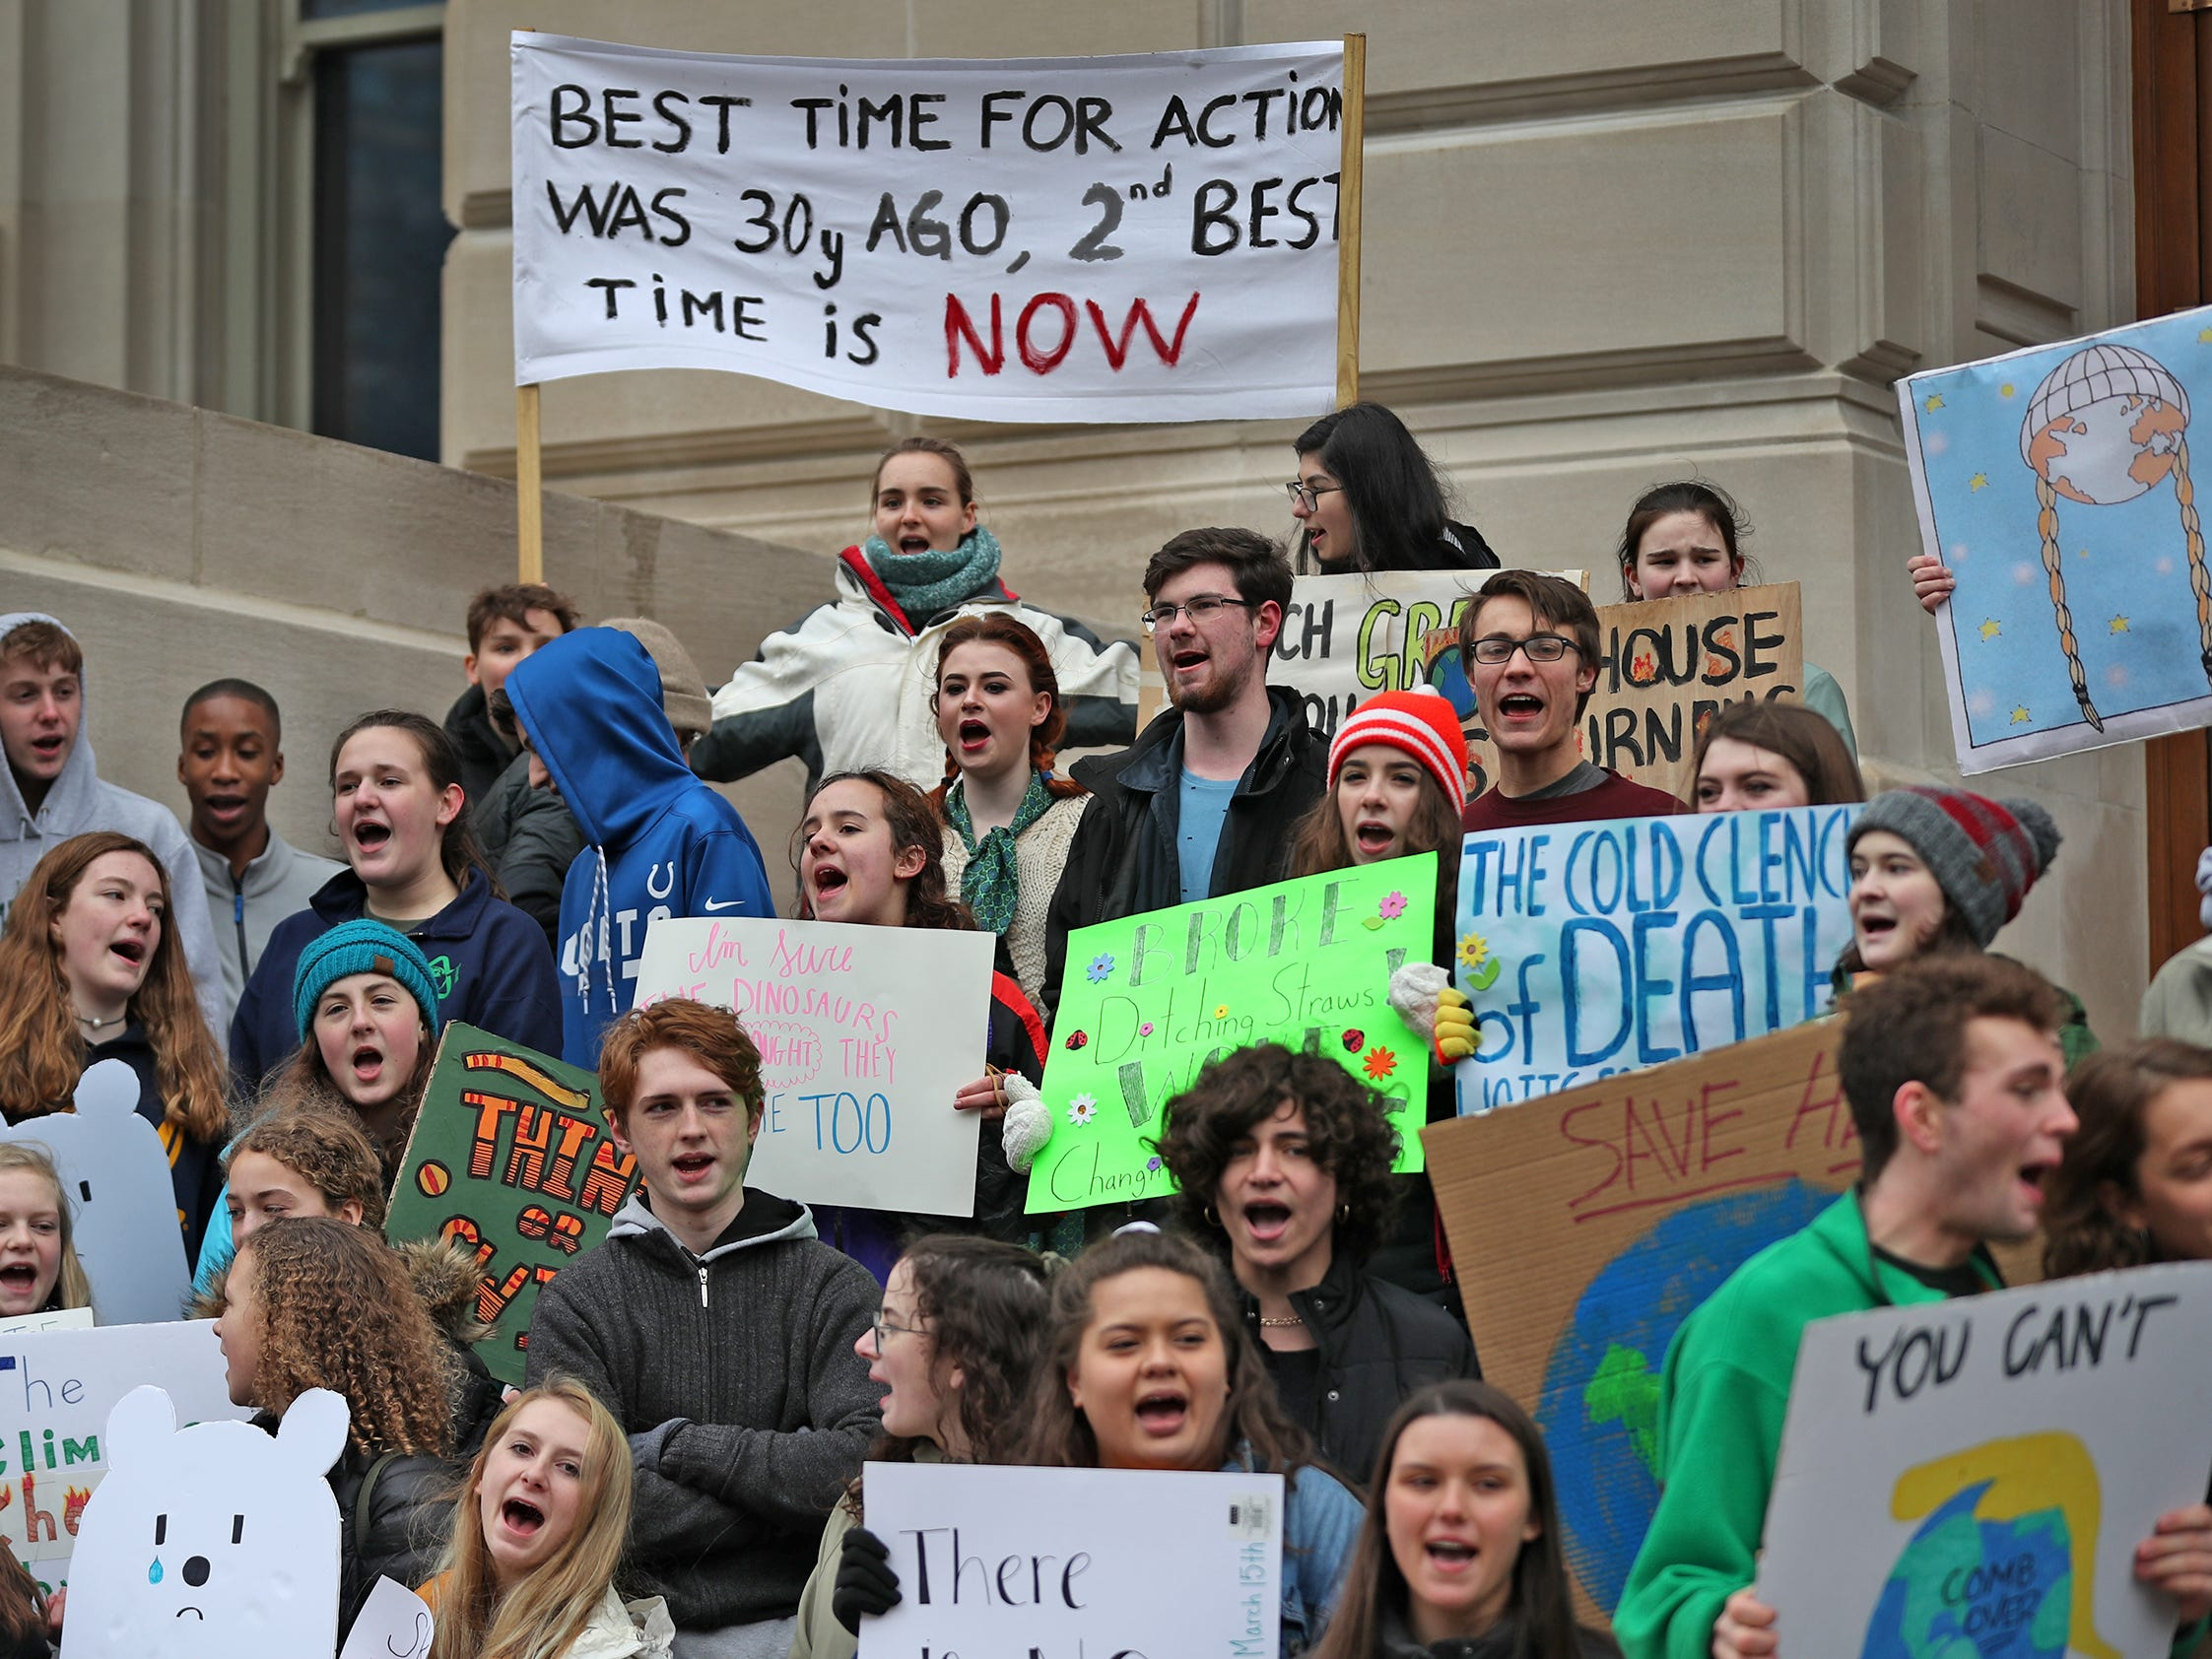 Students come together with a variety of signs during the Indiana part of the international Climate Strike, Friday, March 15, 2019, held outside the Indiana Statehouse.  Following in the footsteps of 16-year-old Swedish trailblazer, Greta Thunberg, students around the world are skipping school to protest government inaction on climate change.  The Indiana protest brought over 250 participants.